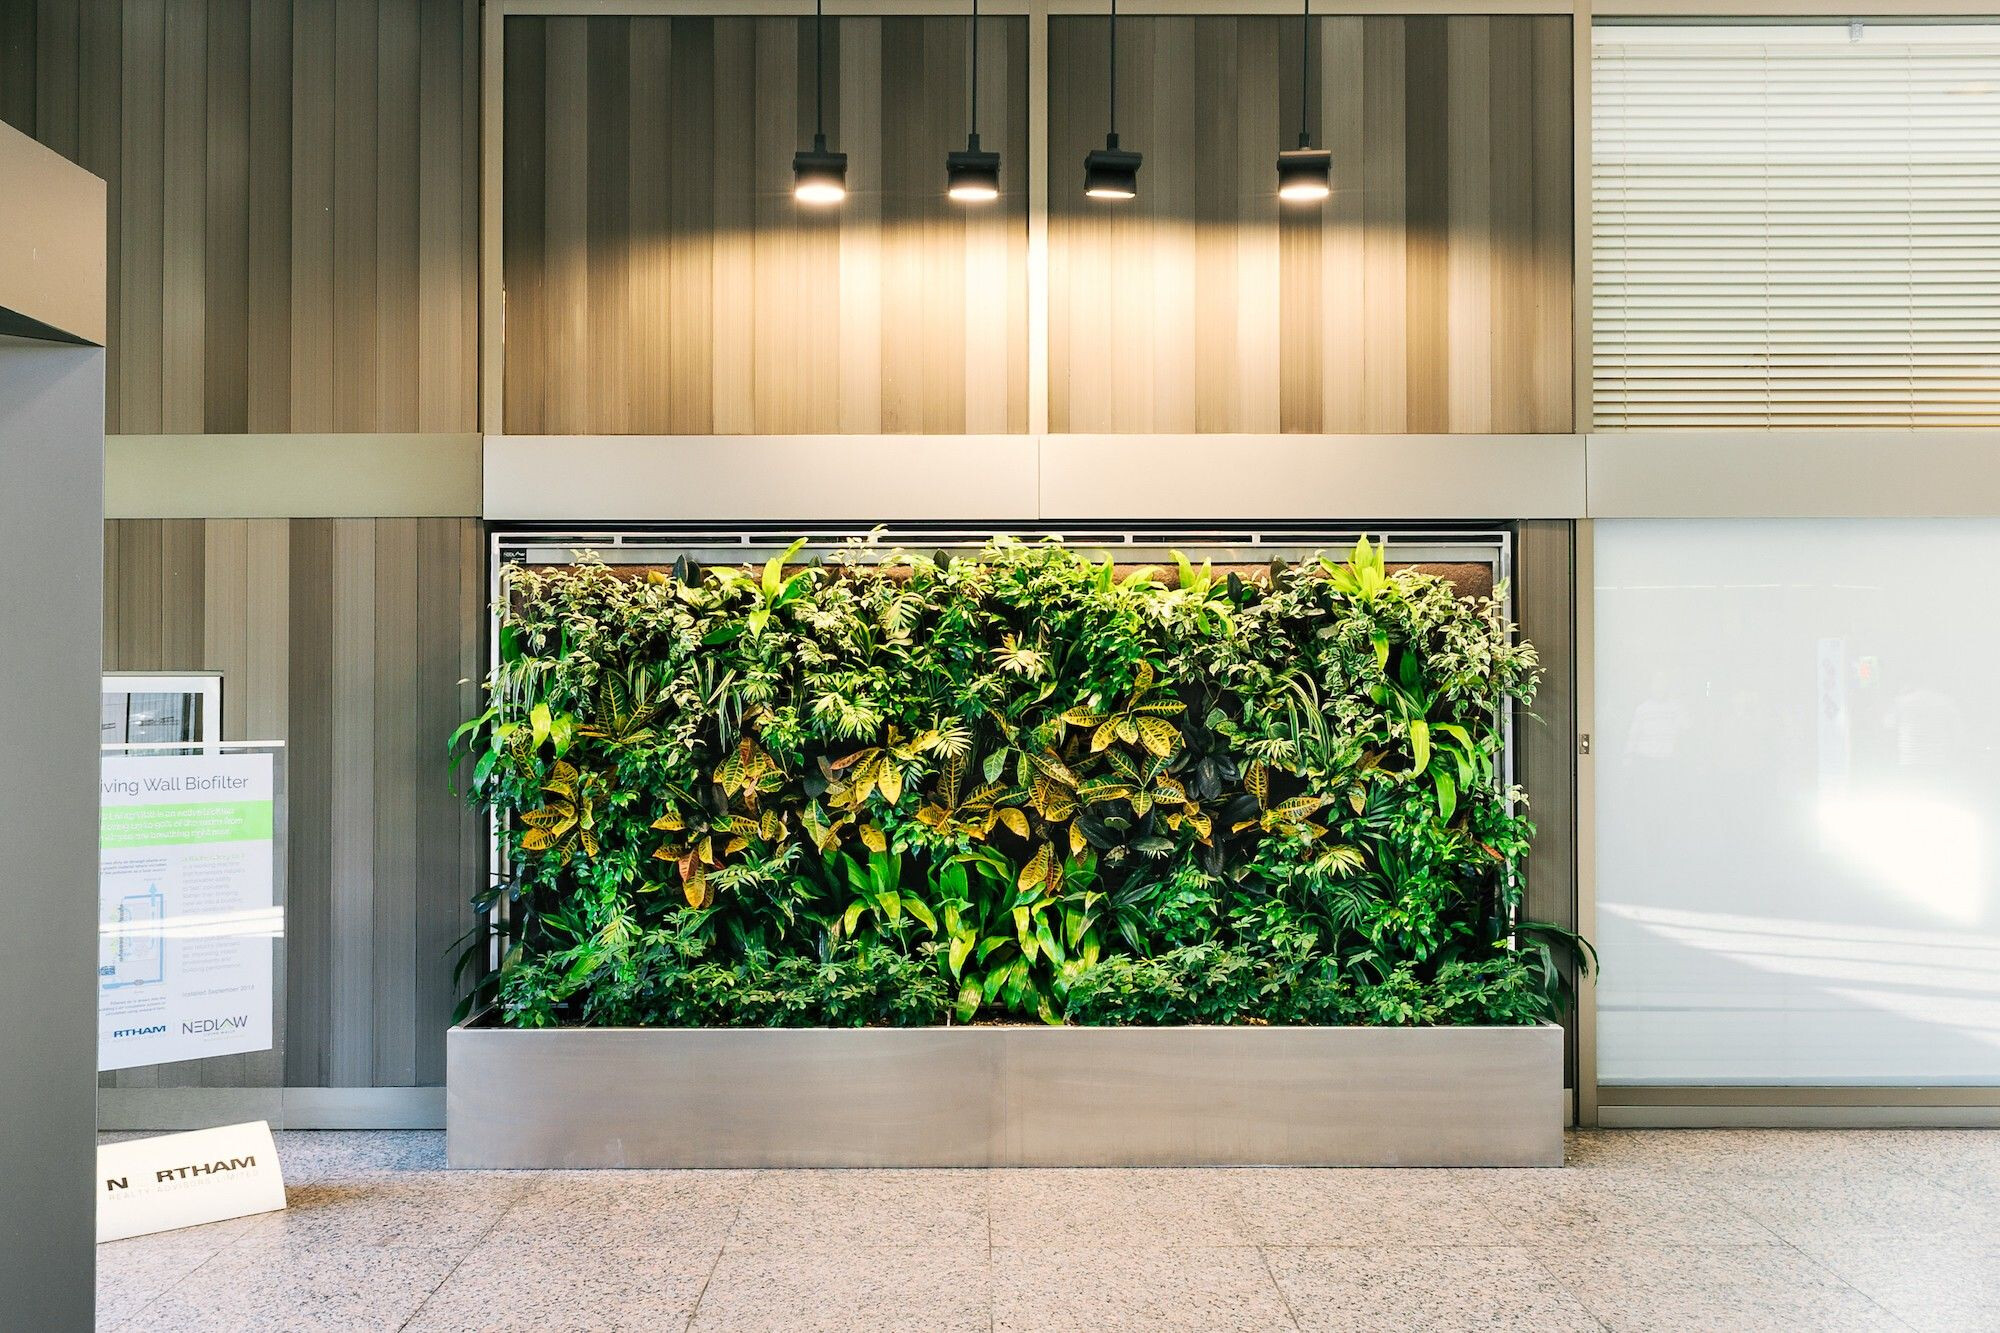 Office Living Wall Biofilters